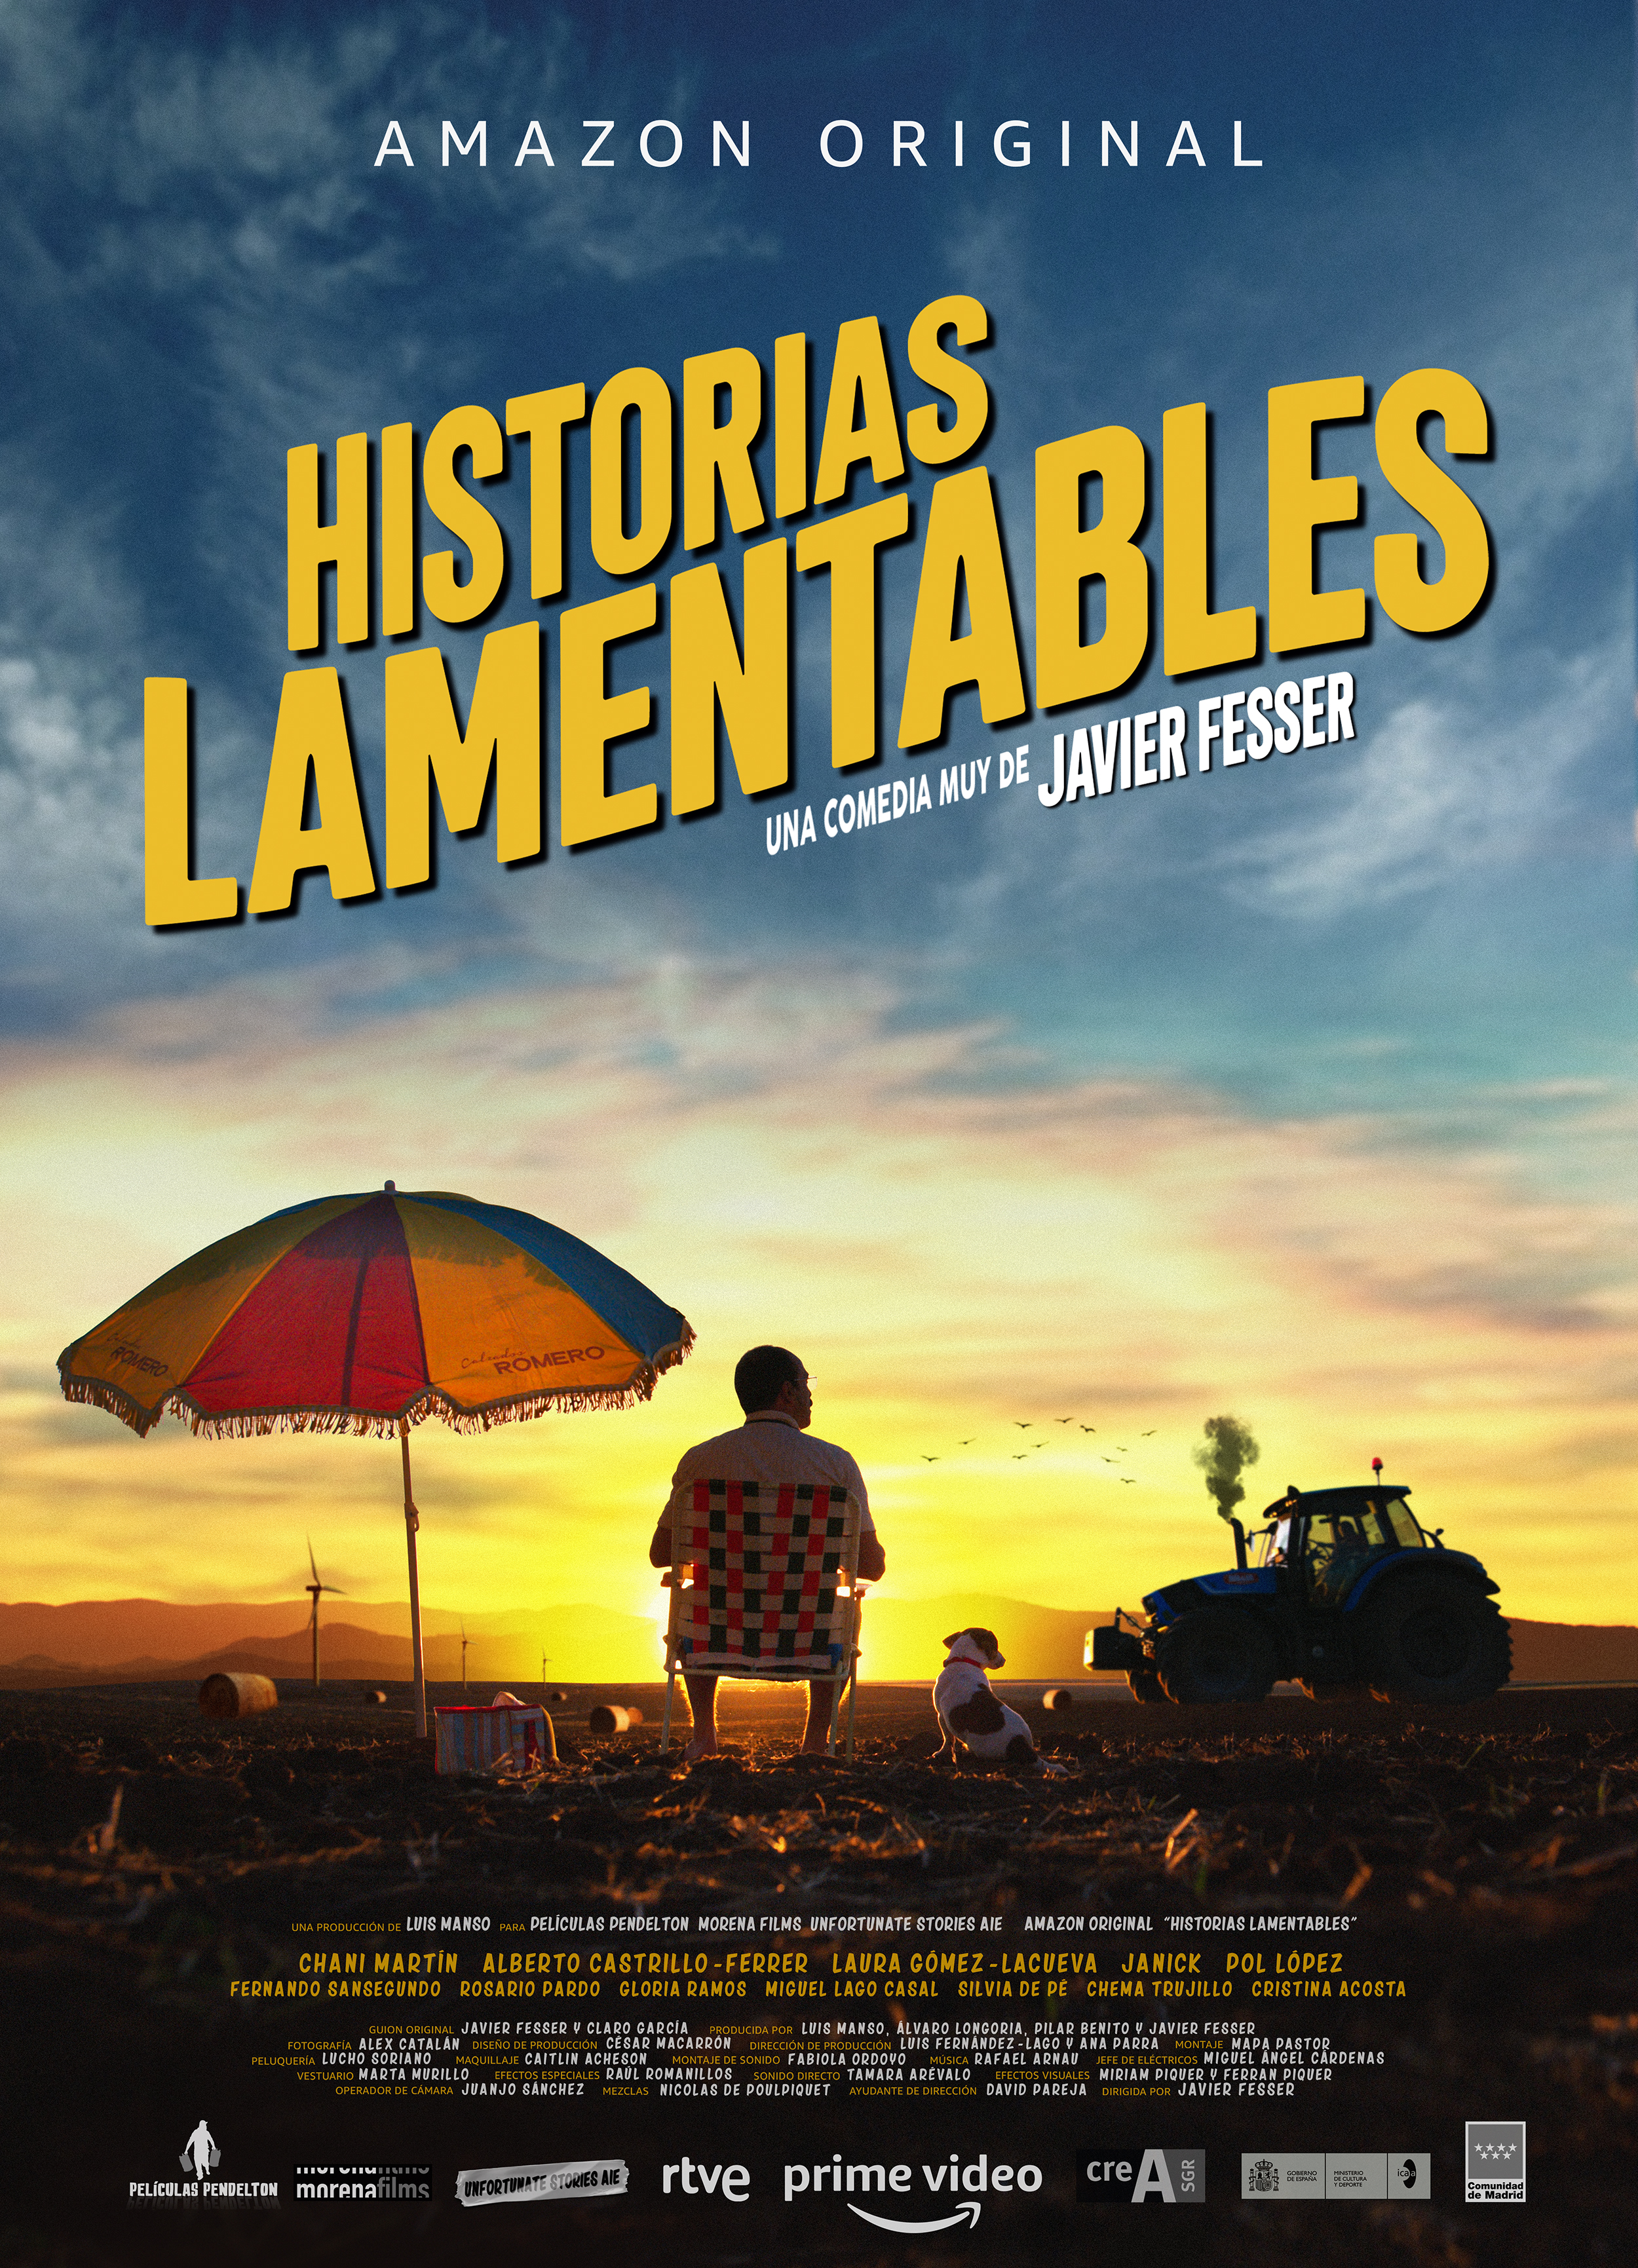 Historias lamentables hd on soap2day